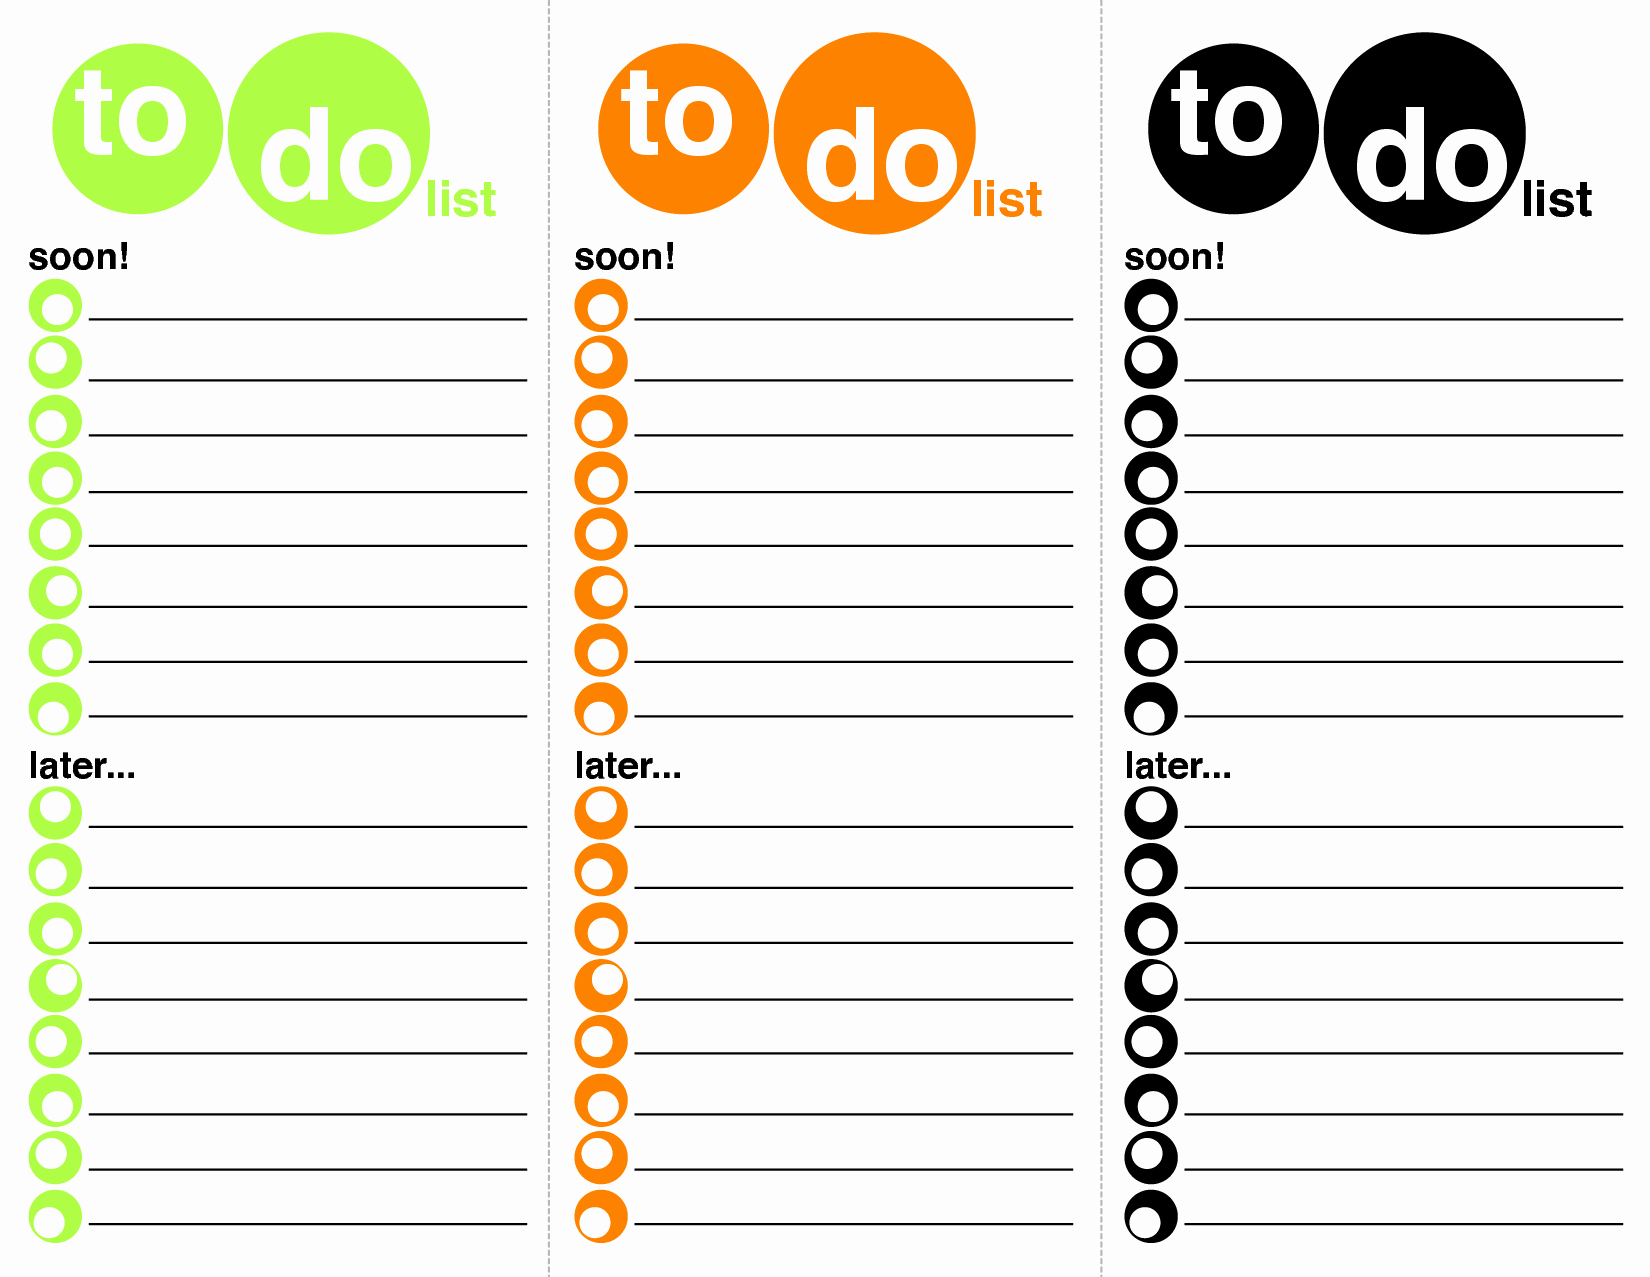 To Do List Free Download Luxury to Do List Template